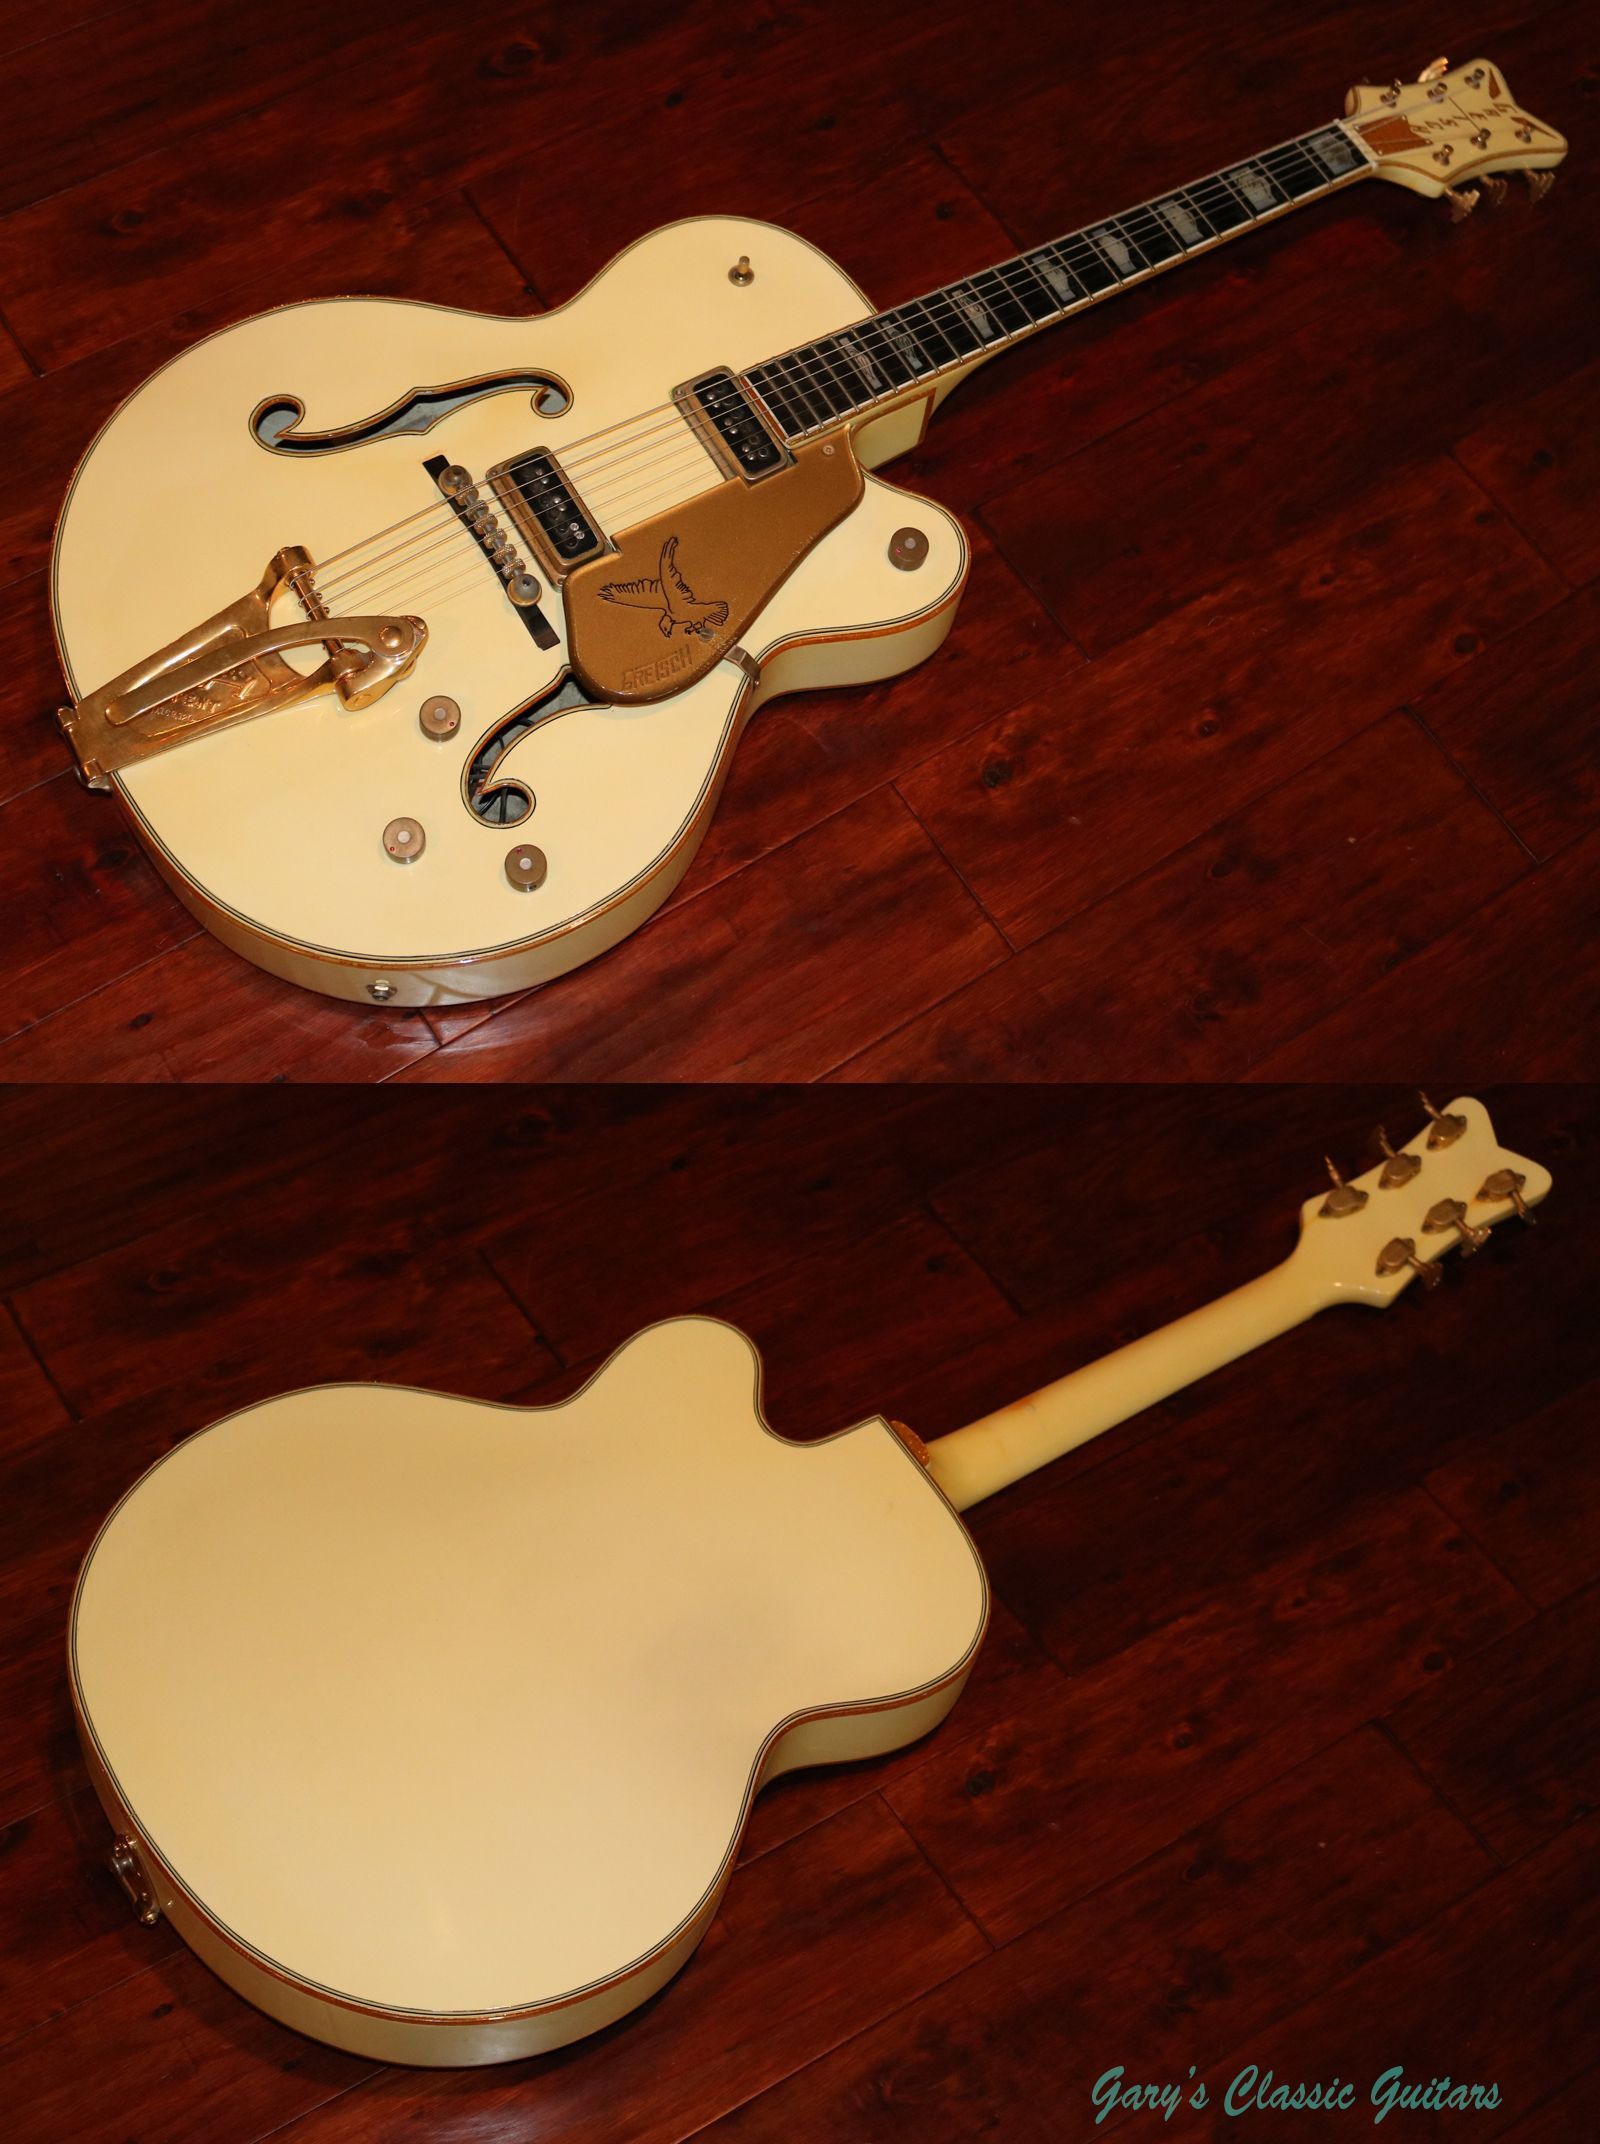 Super Rare Single Cutaway 1956 Gretsch White Falcon Garysguitars